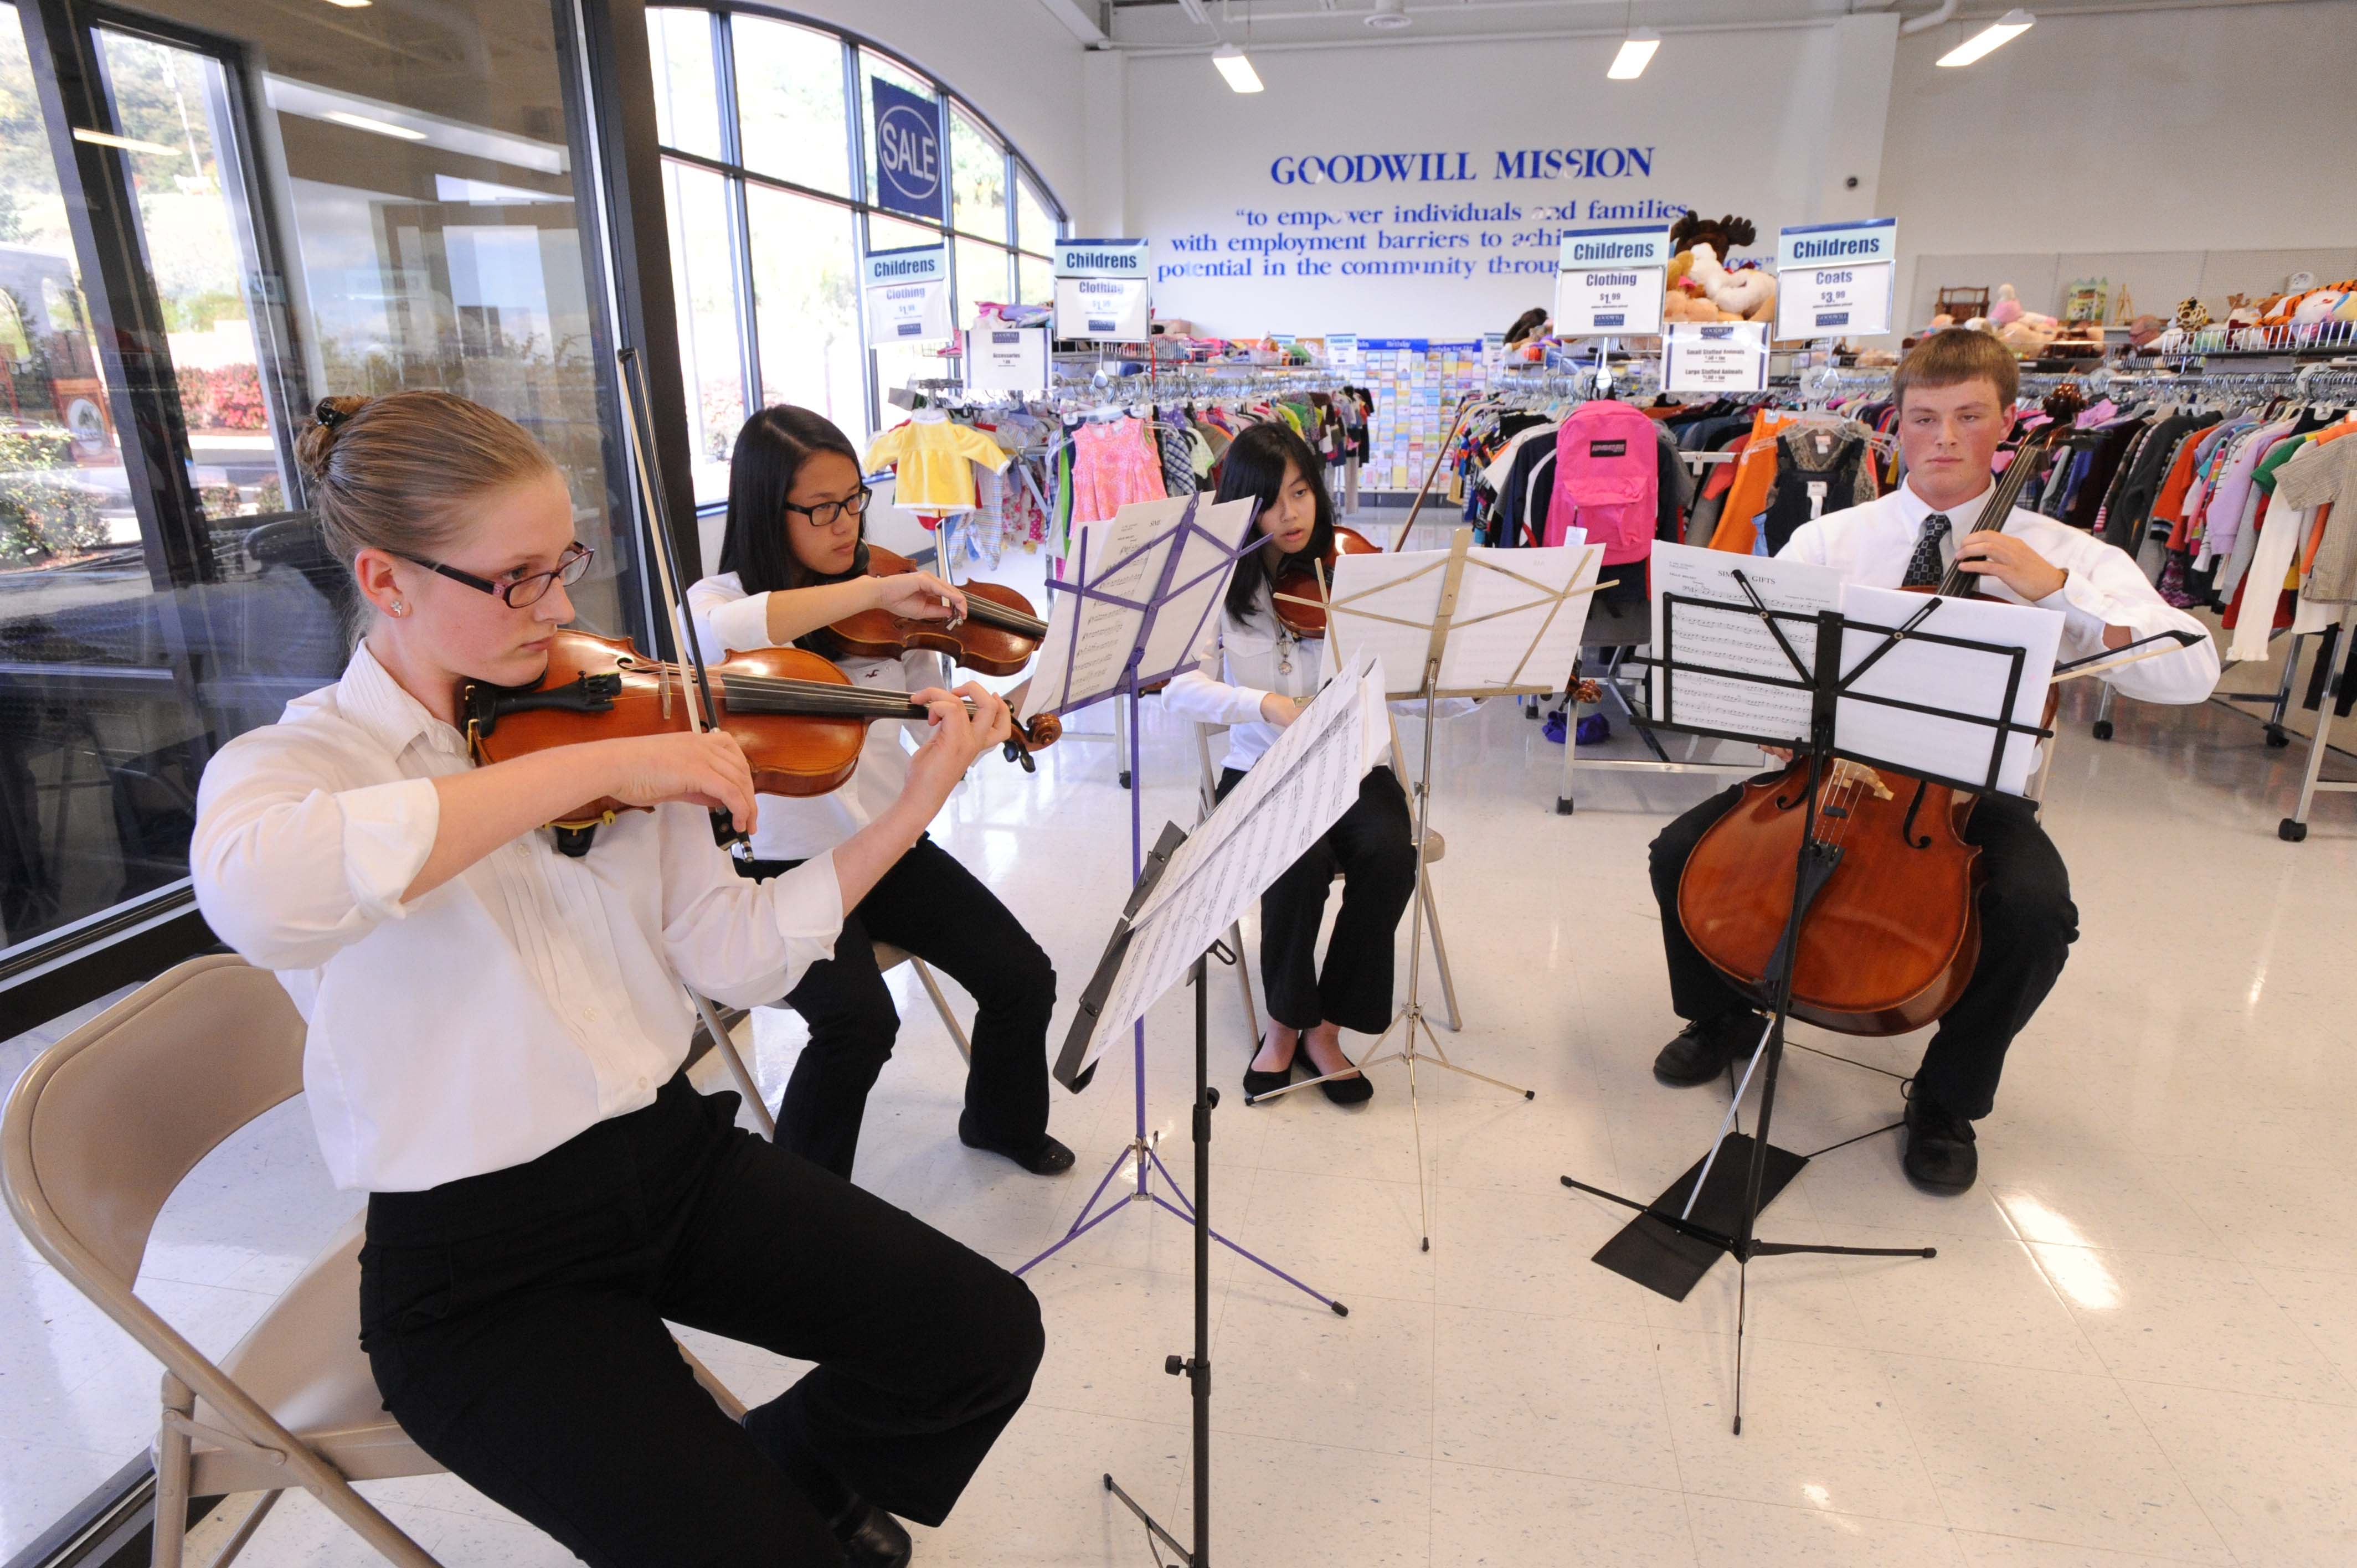 From left: Zelie Eger,Lauren Sprock, Kaylee Shook and Joseph Eger, members of the Johnstown Symphony Youth Orchestra play inside the Goodwill Industries of the Conemaugh Valley (GICV) store during an annual two-day conference Thursday, Sept. 25, 2014, in Johnstown,Pa. The GICV agency hosted this year's event, inviting representatives from eight other agencies to collaborate on best practices and explore ways to enhance retail, mission and contract services. (AP Photo/Tribune-Democrat, John Rucosky)